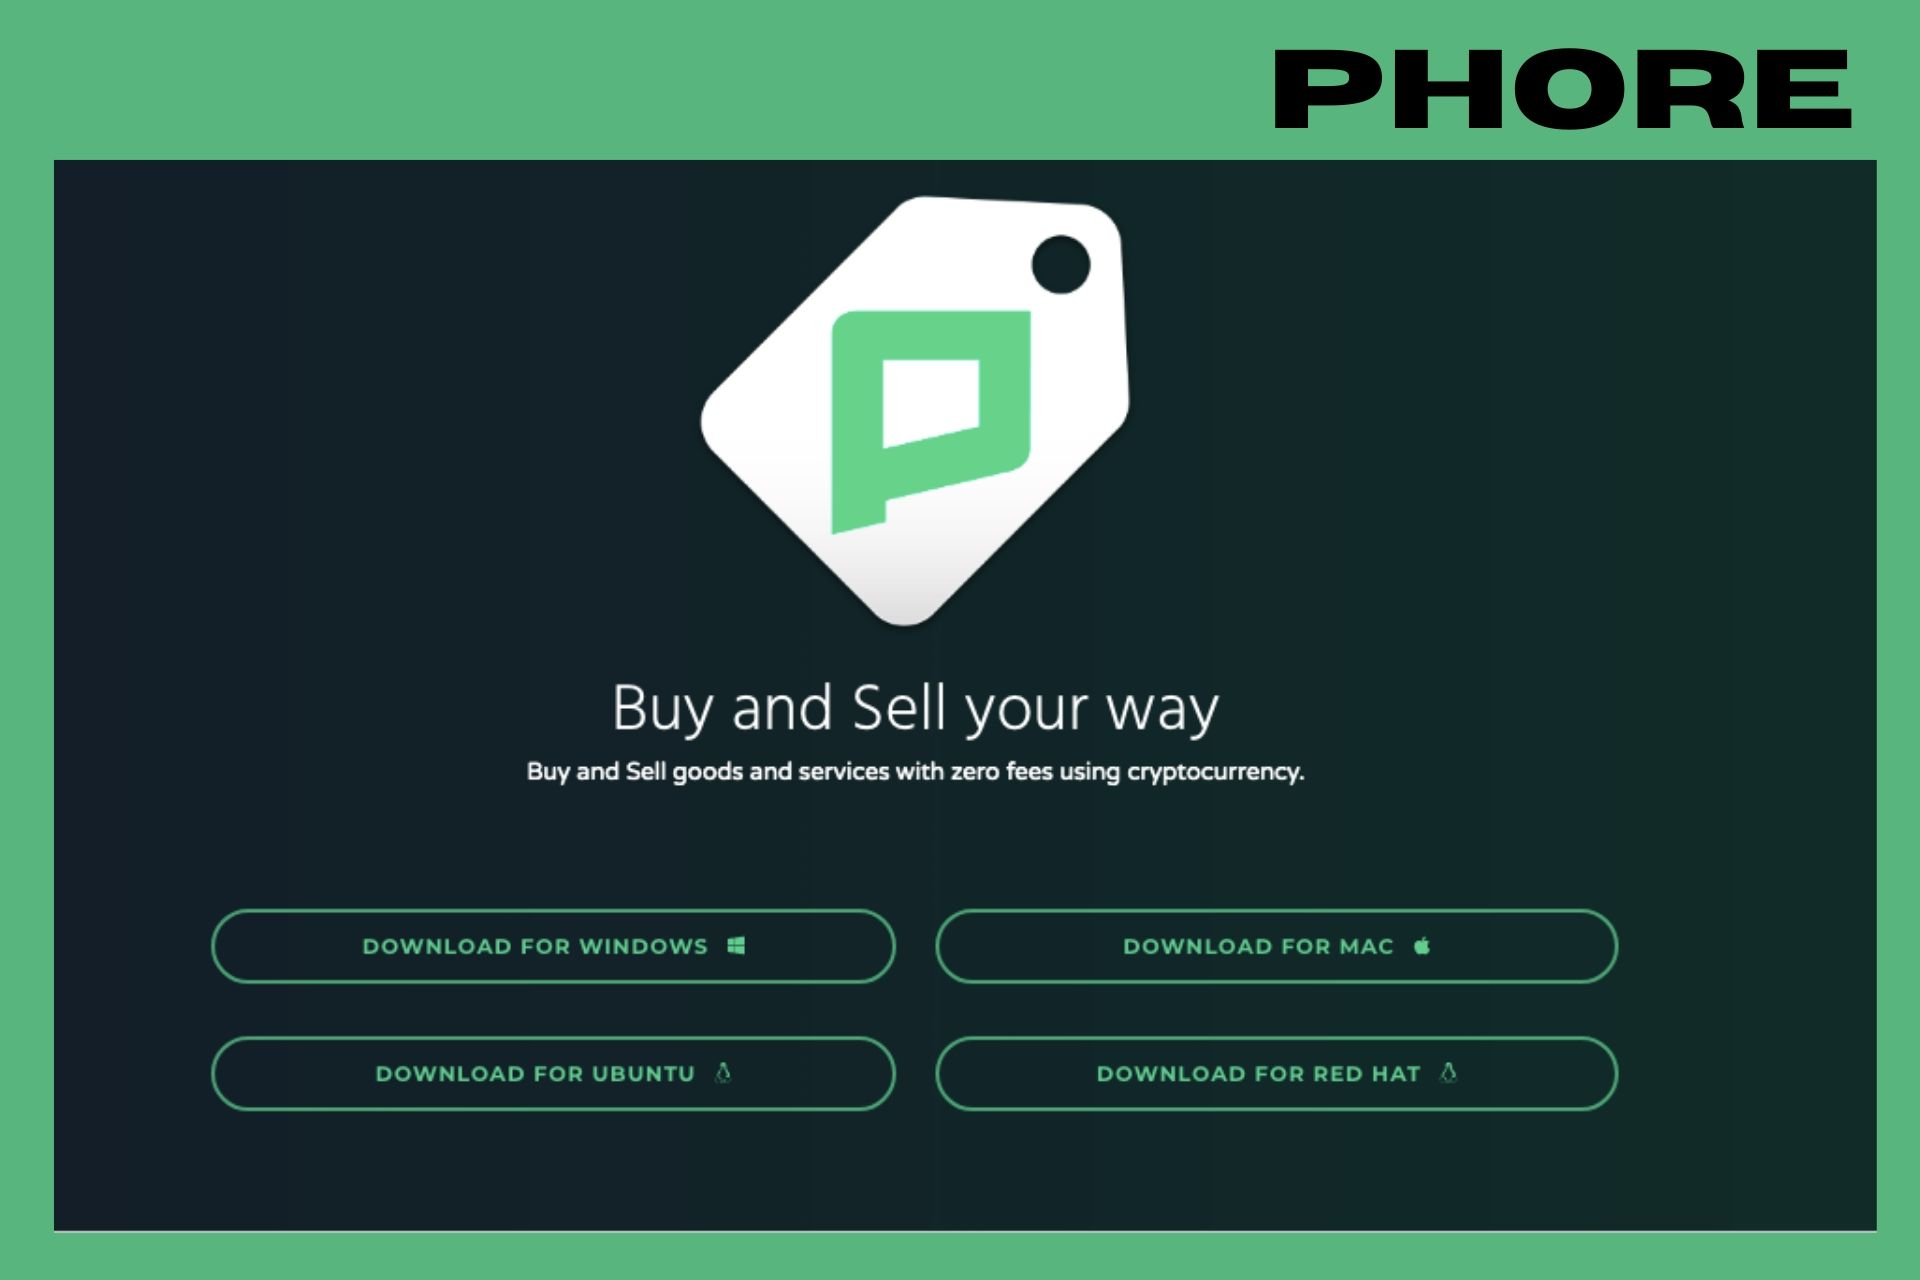 Phore Introduces A New Web Browser to Access Its Decentralized Marketplace